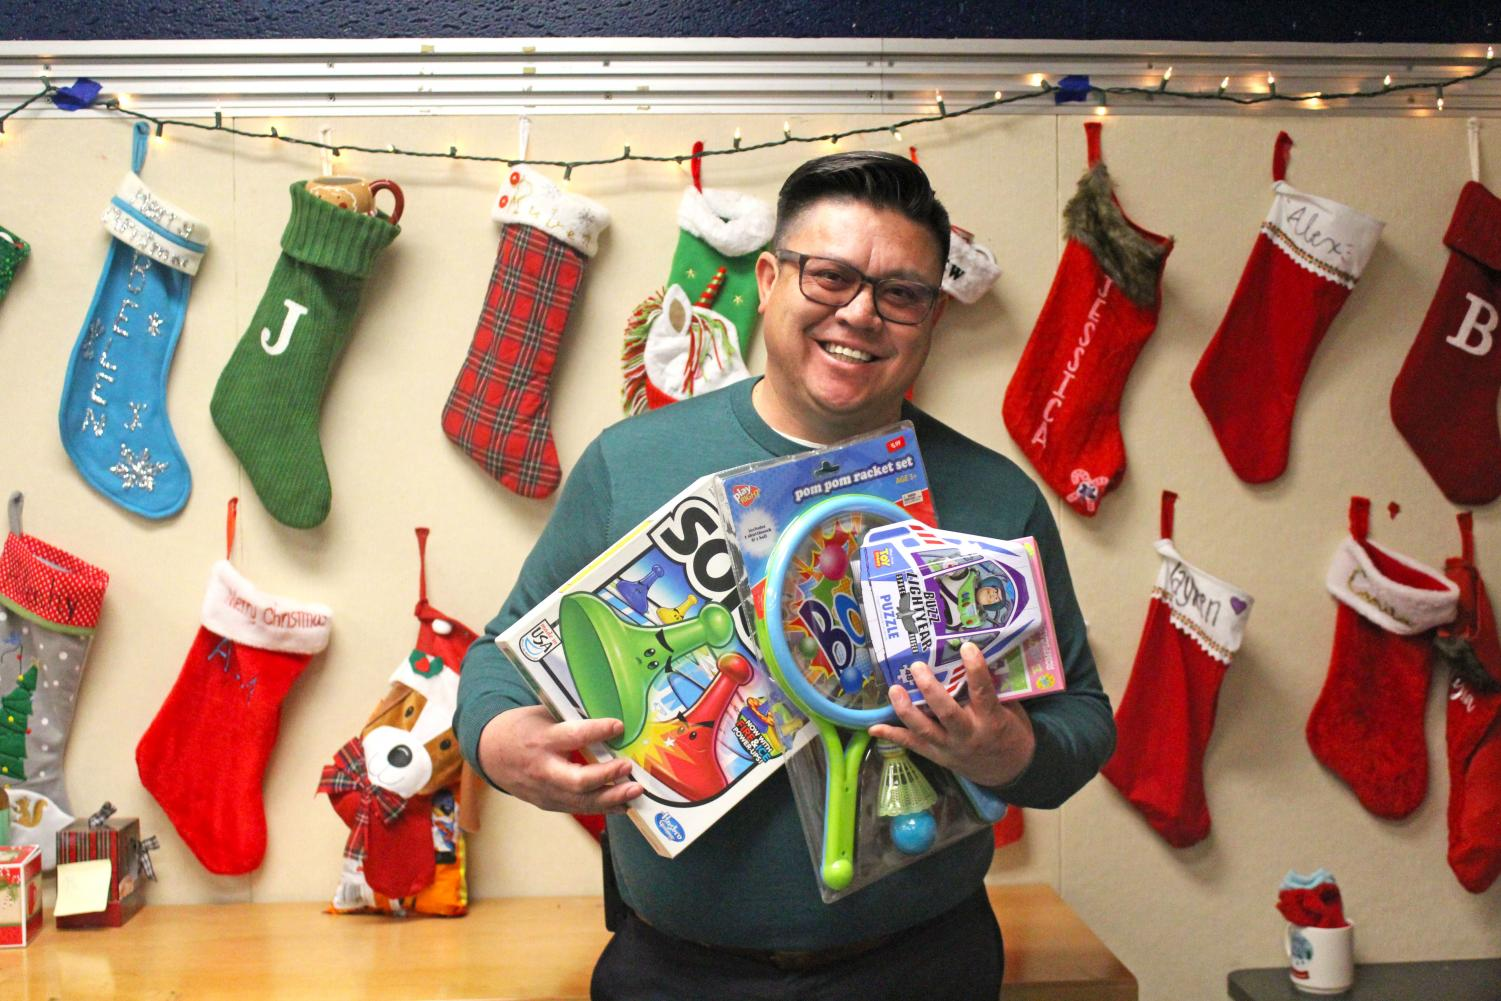 Dr. Morales displays some toys that some kids will be taking home.